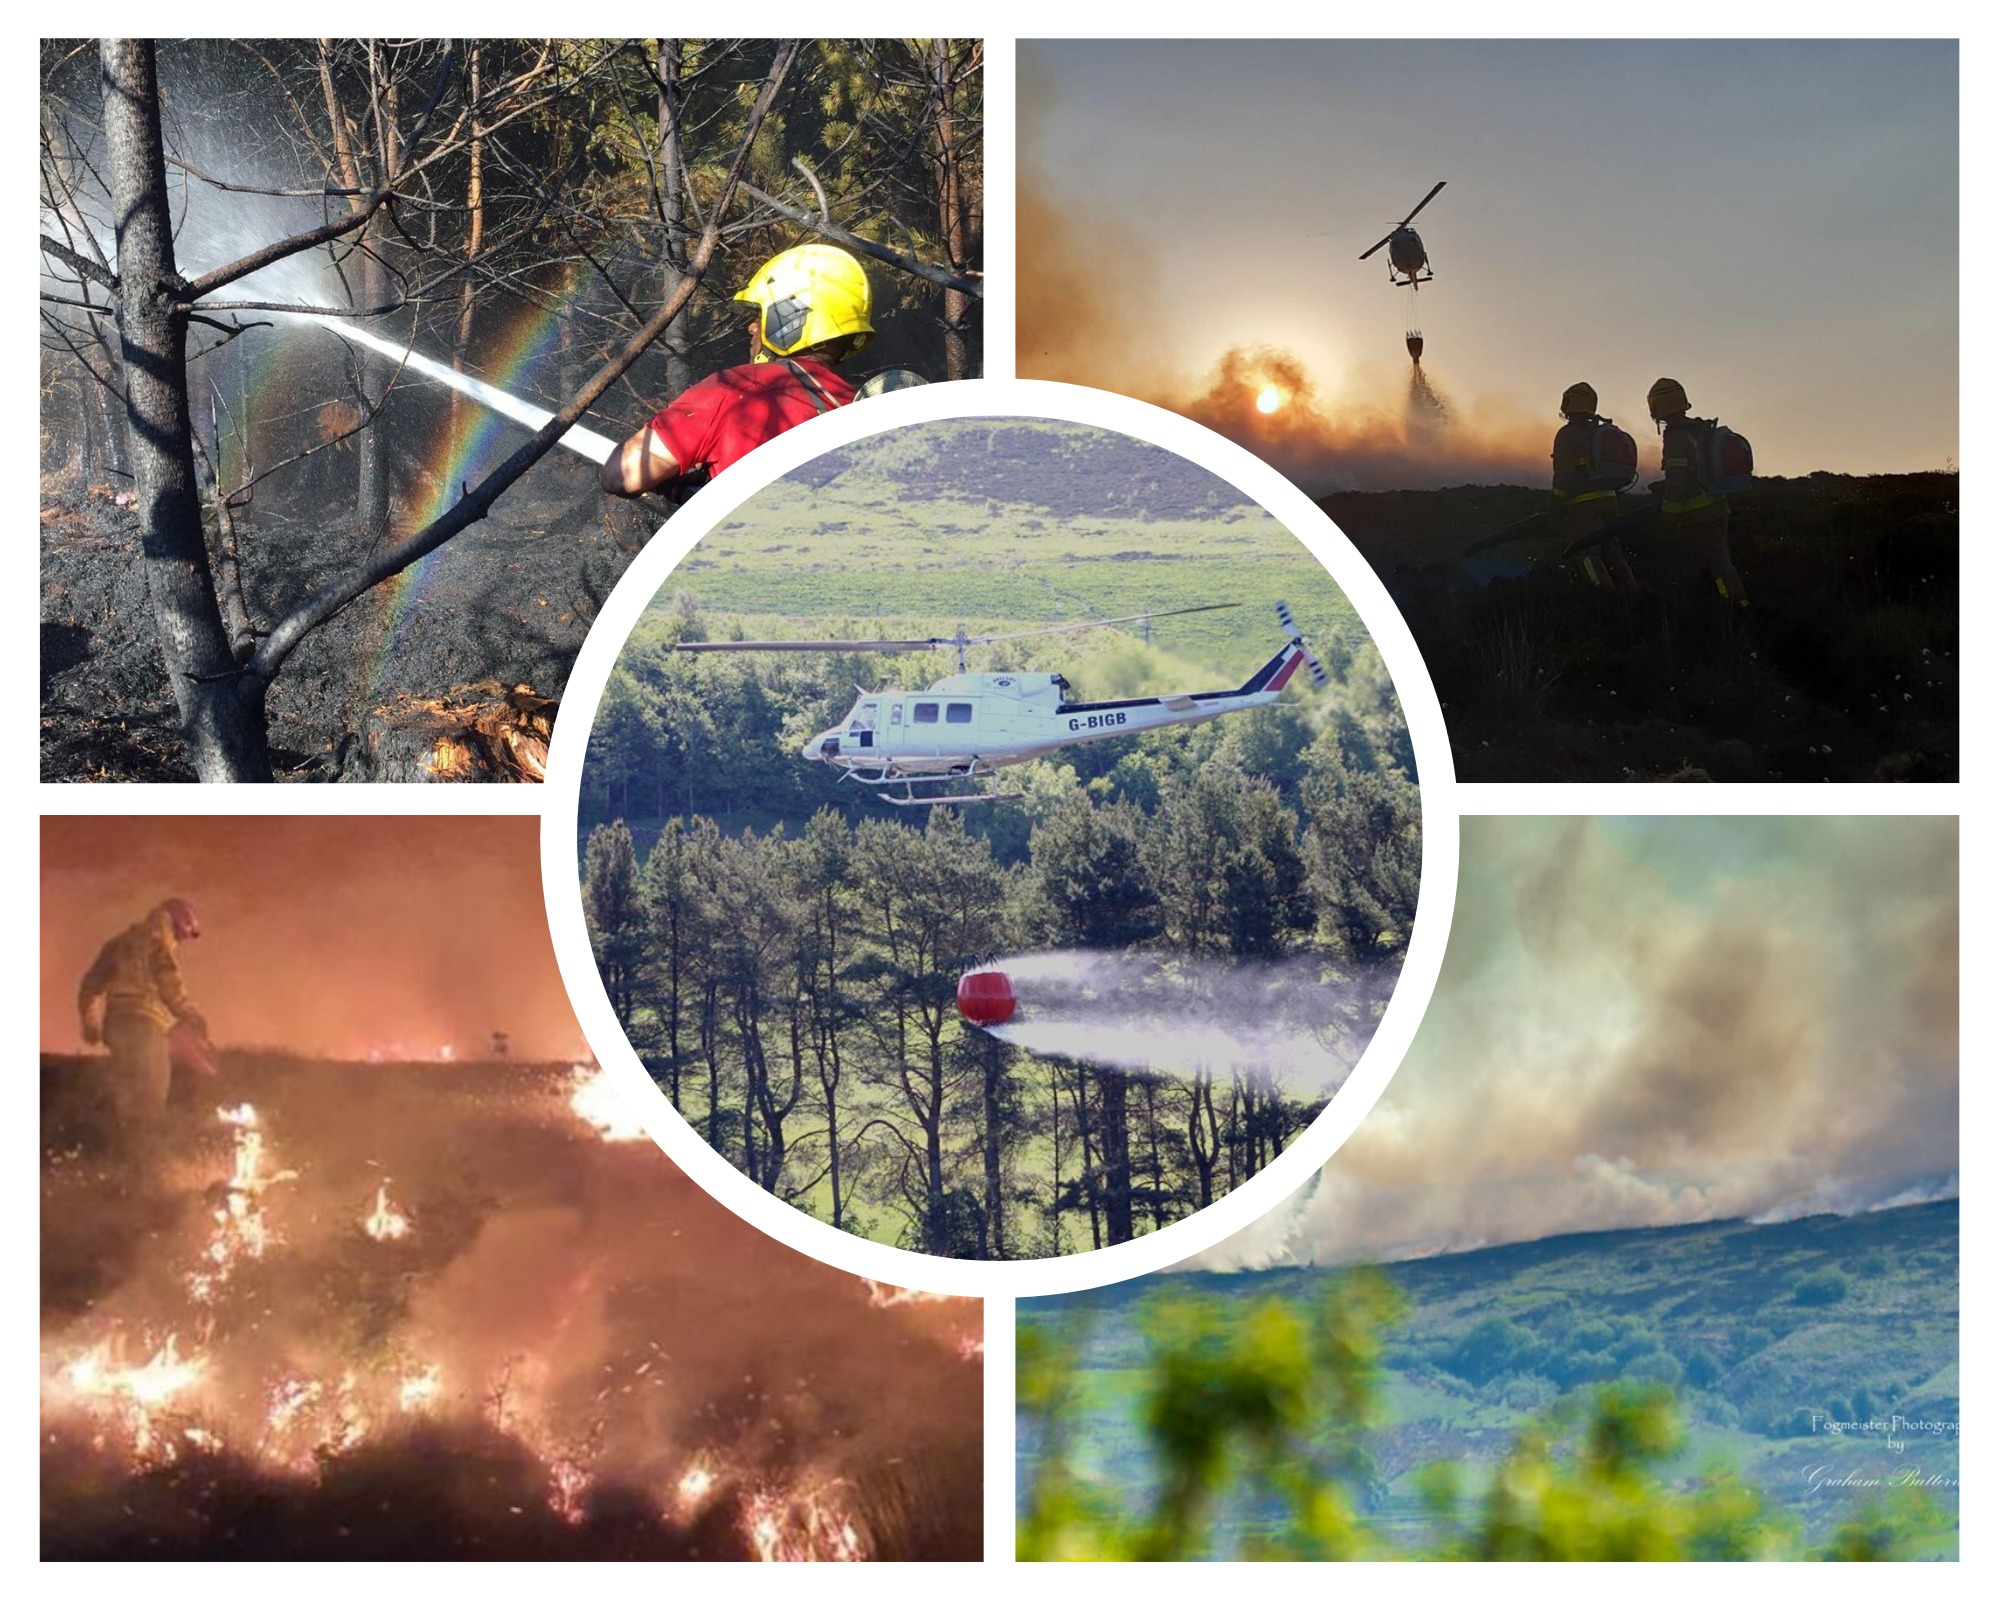 Fire updates: Incident off Grane Road latest in string of devastating blazes across county